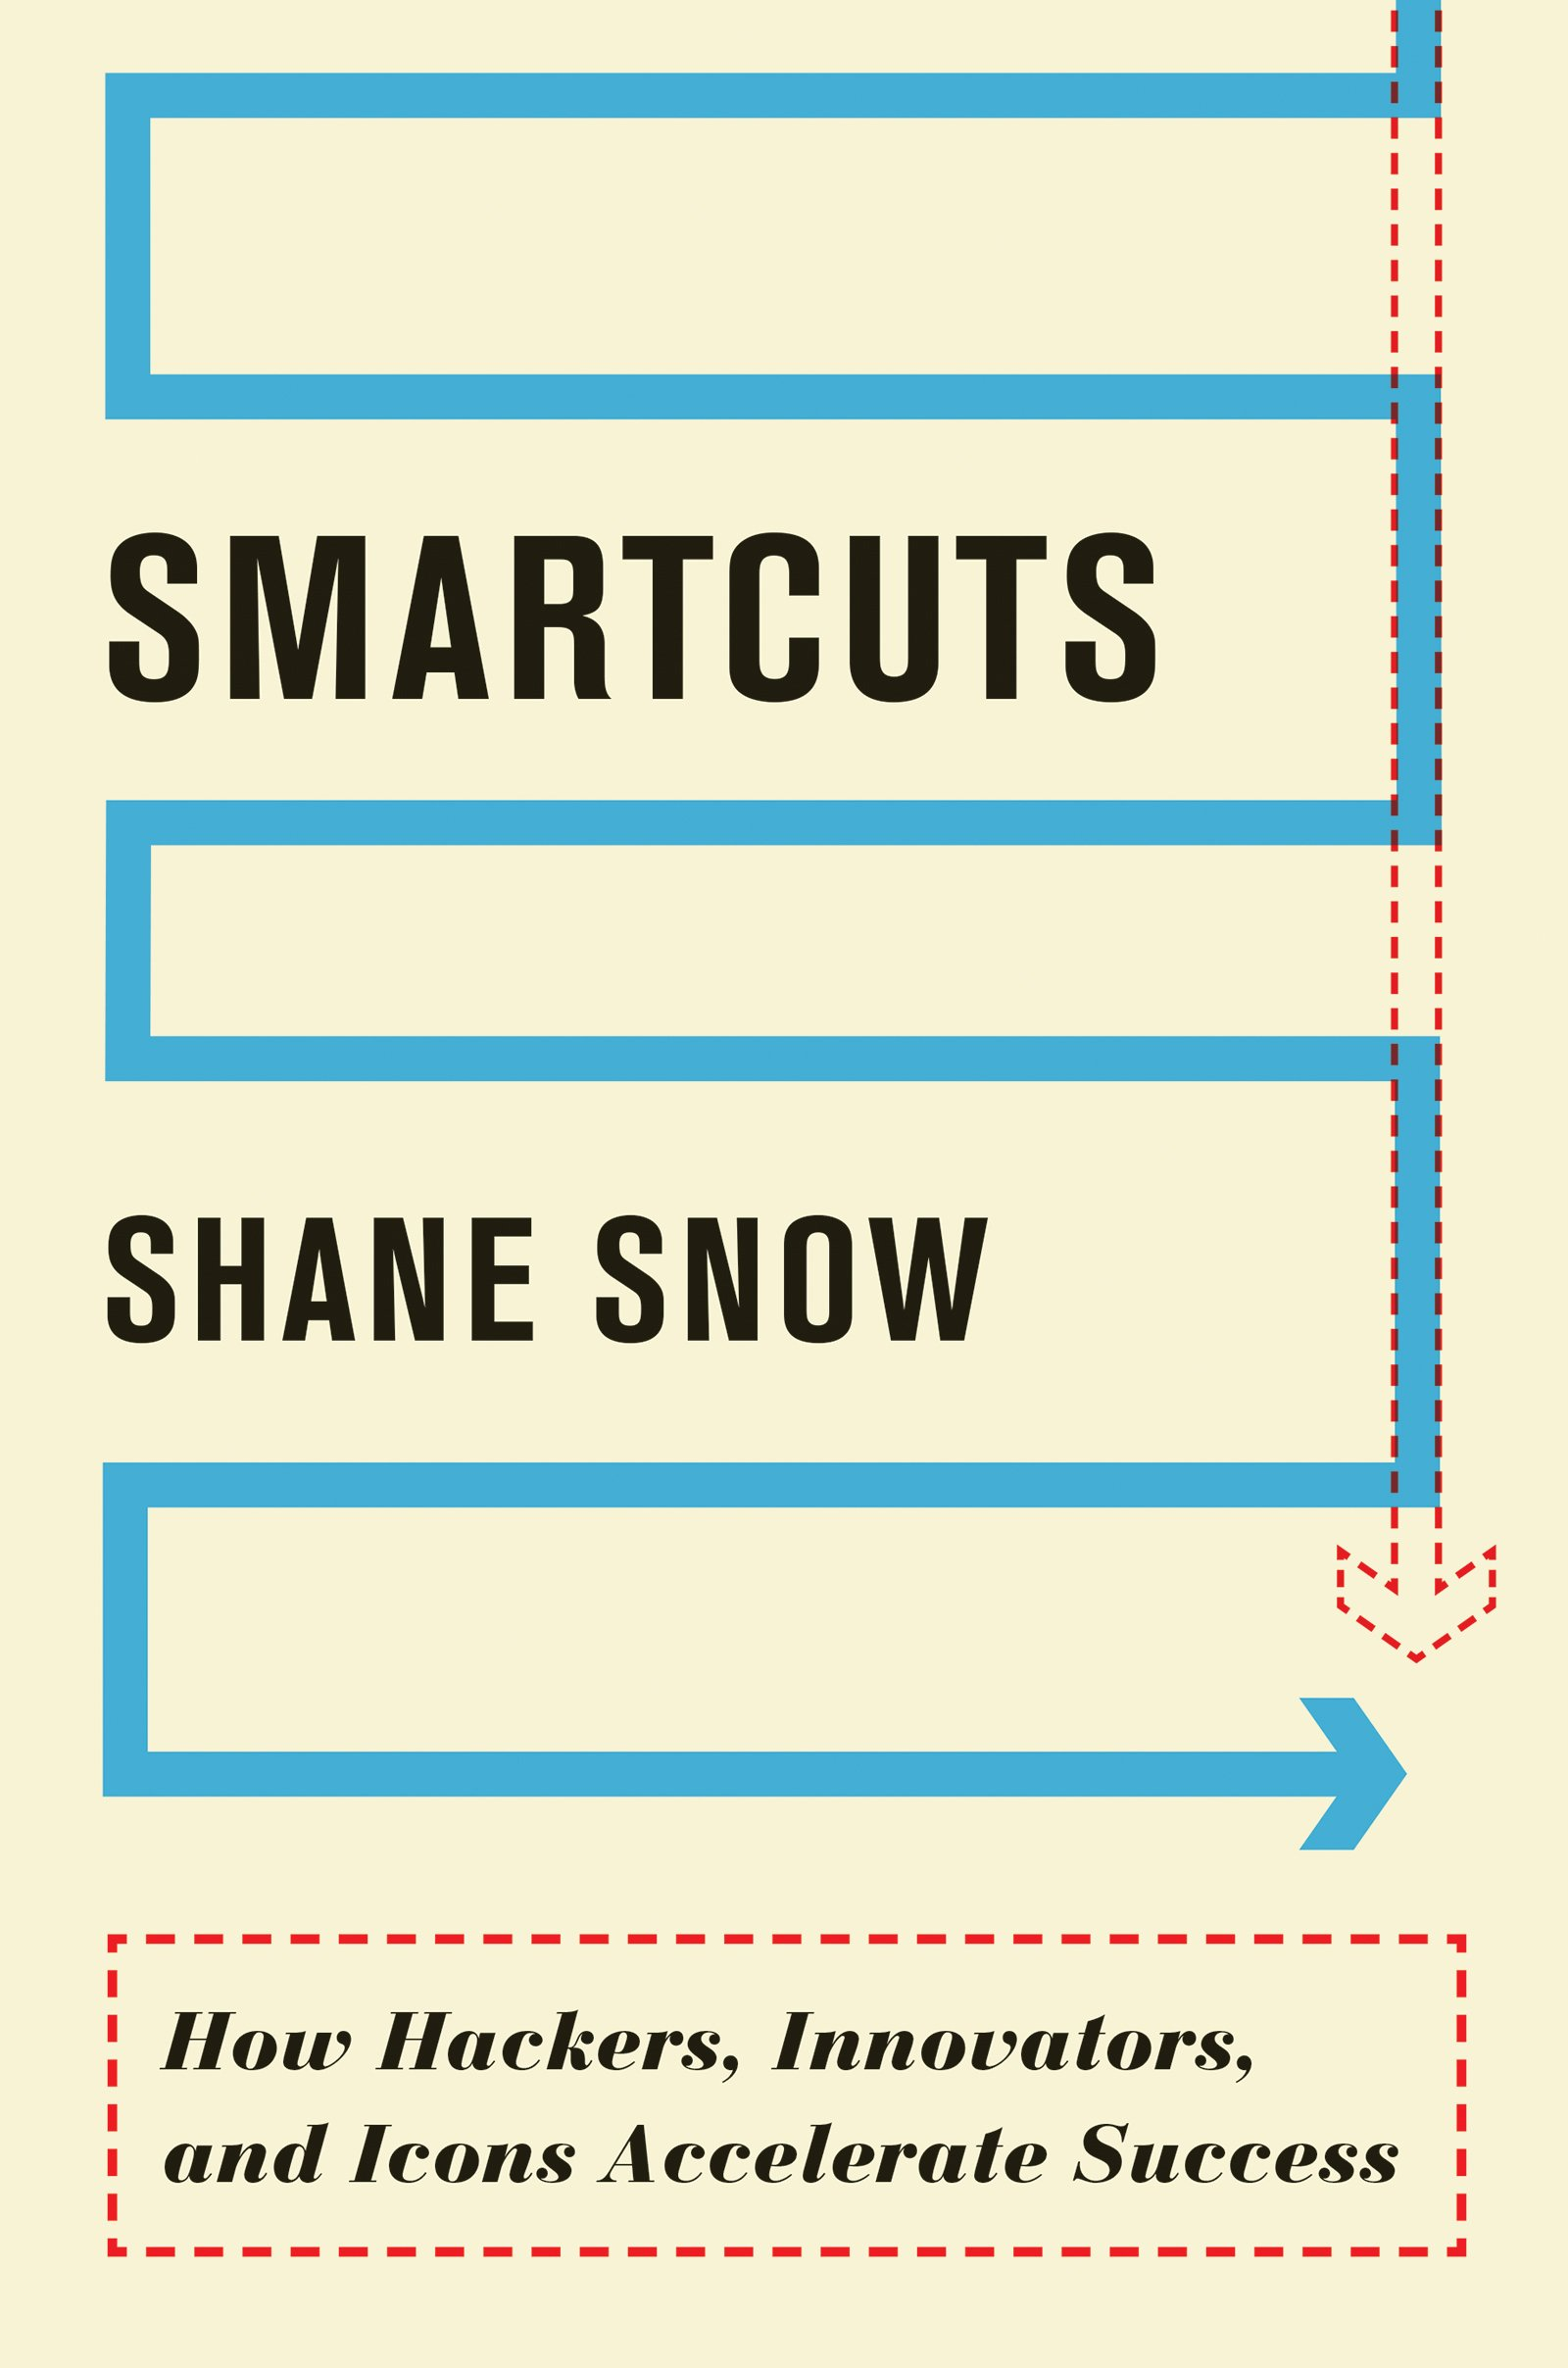 Amazon.com: Smartcuts: The Breakthrough Power of Lateral Thinking ...